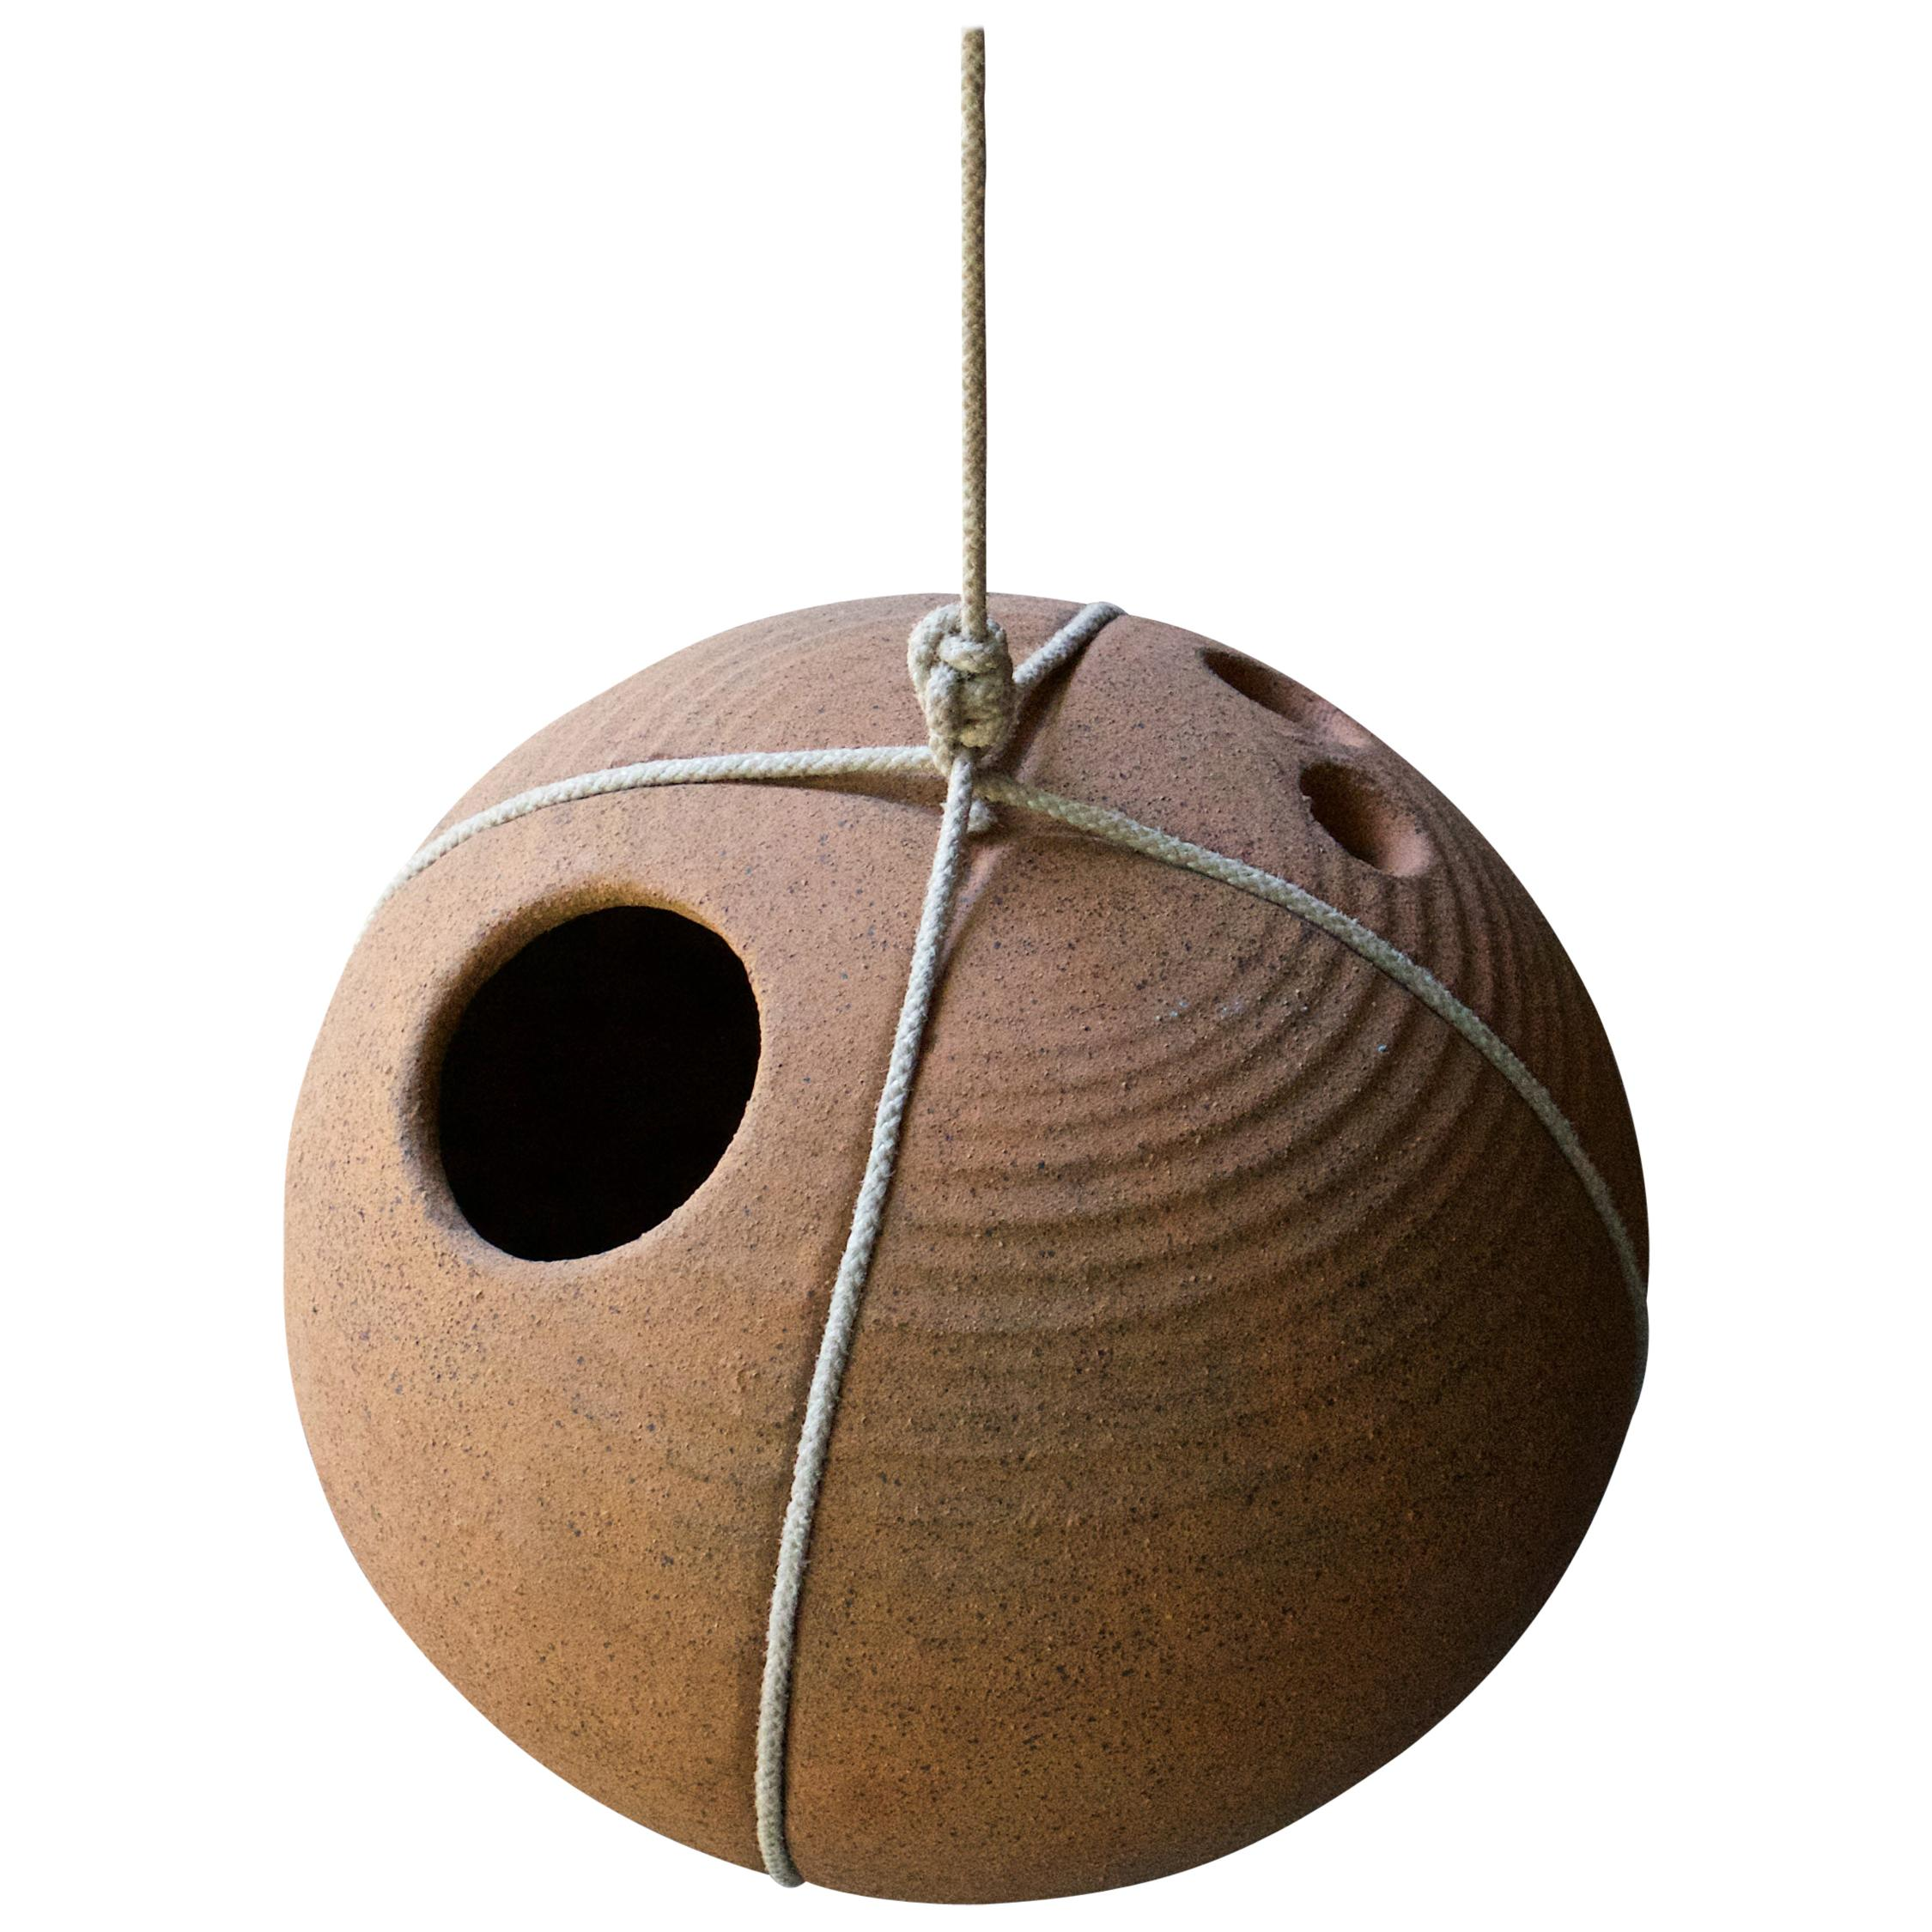 Midcentury String and Stoneware Ball Birdhouse Architectural Pottery Folk Art